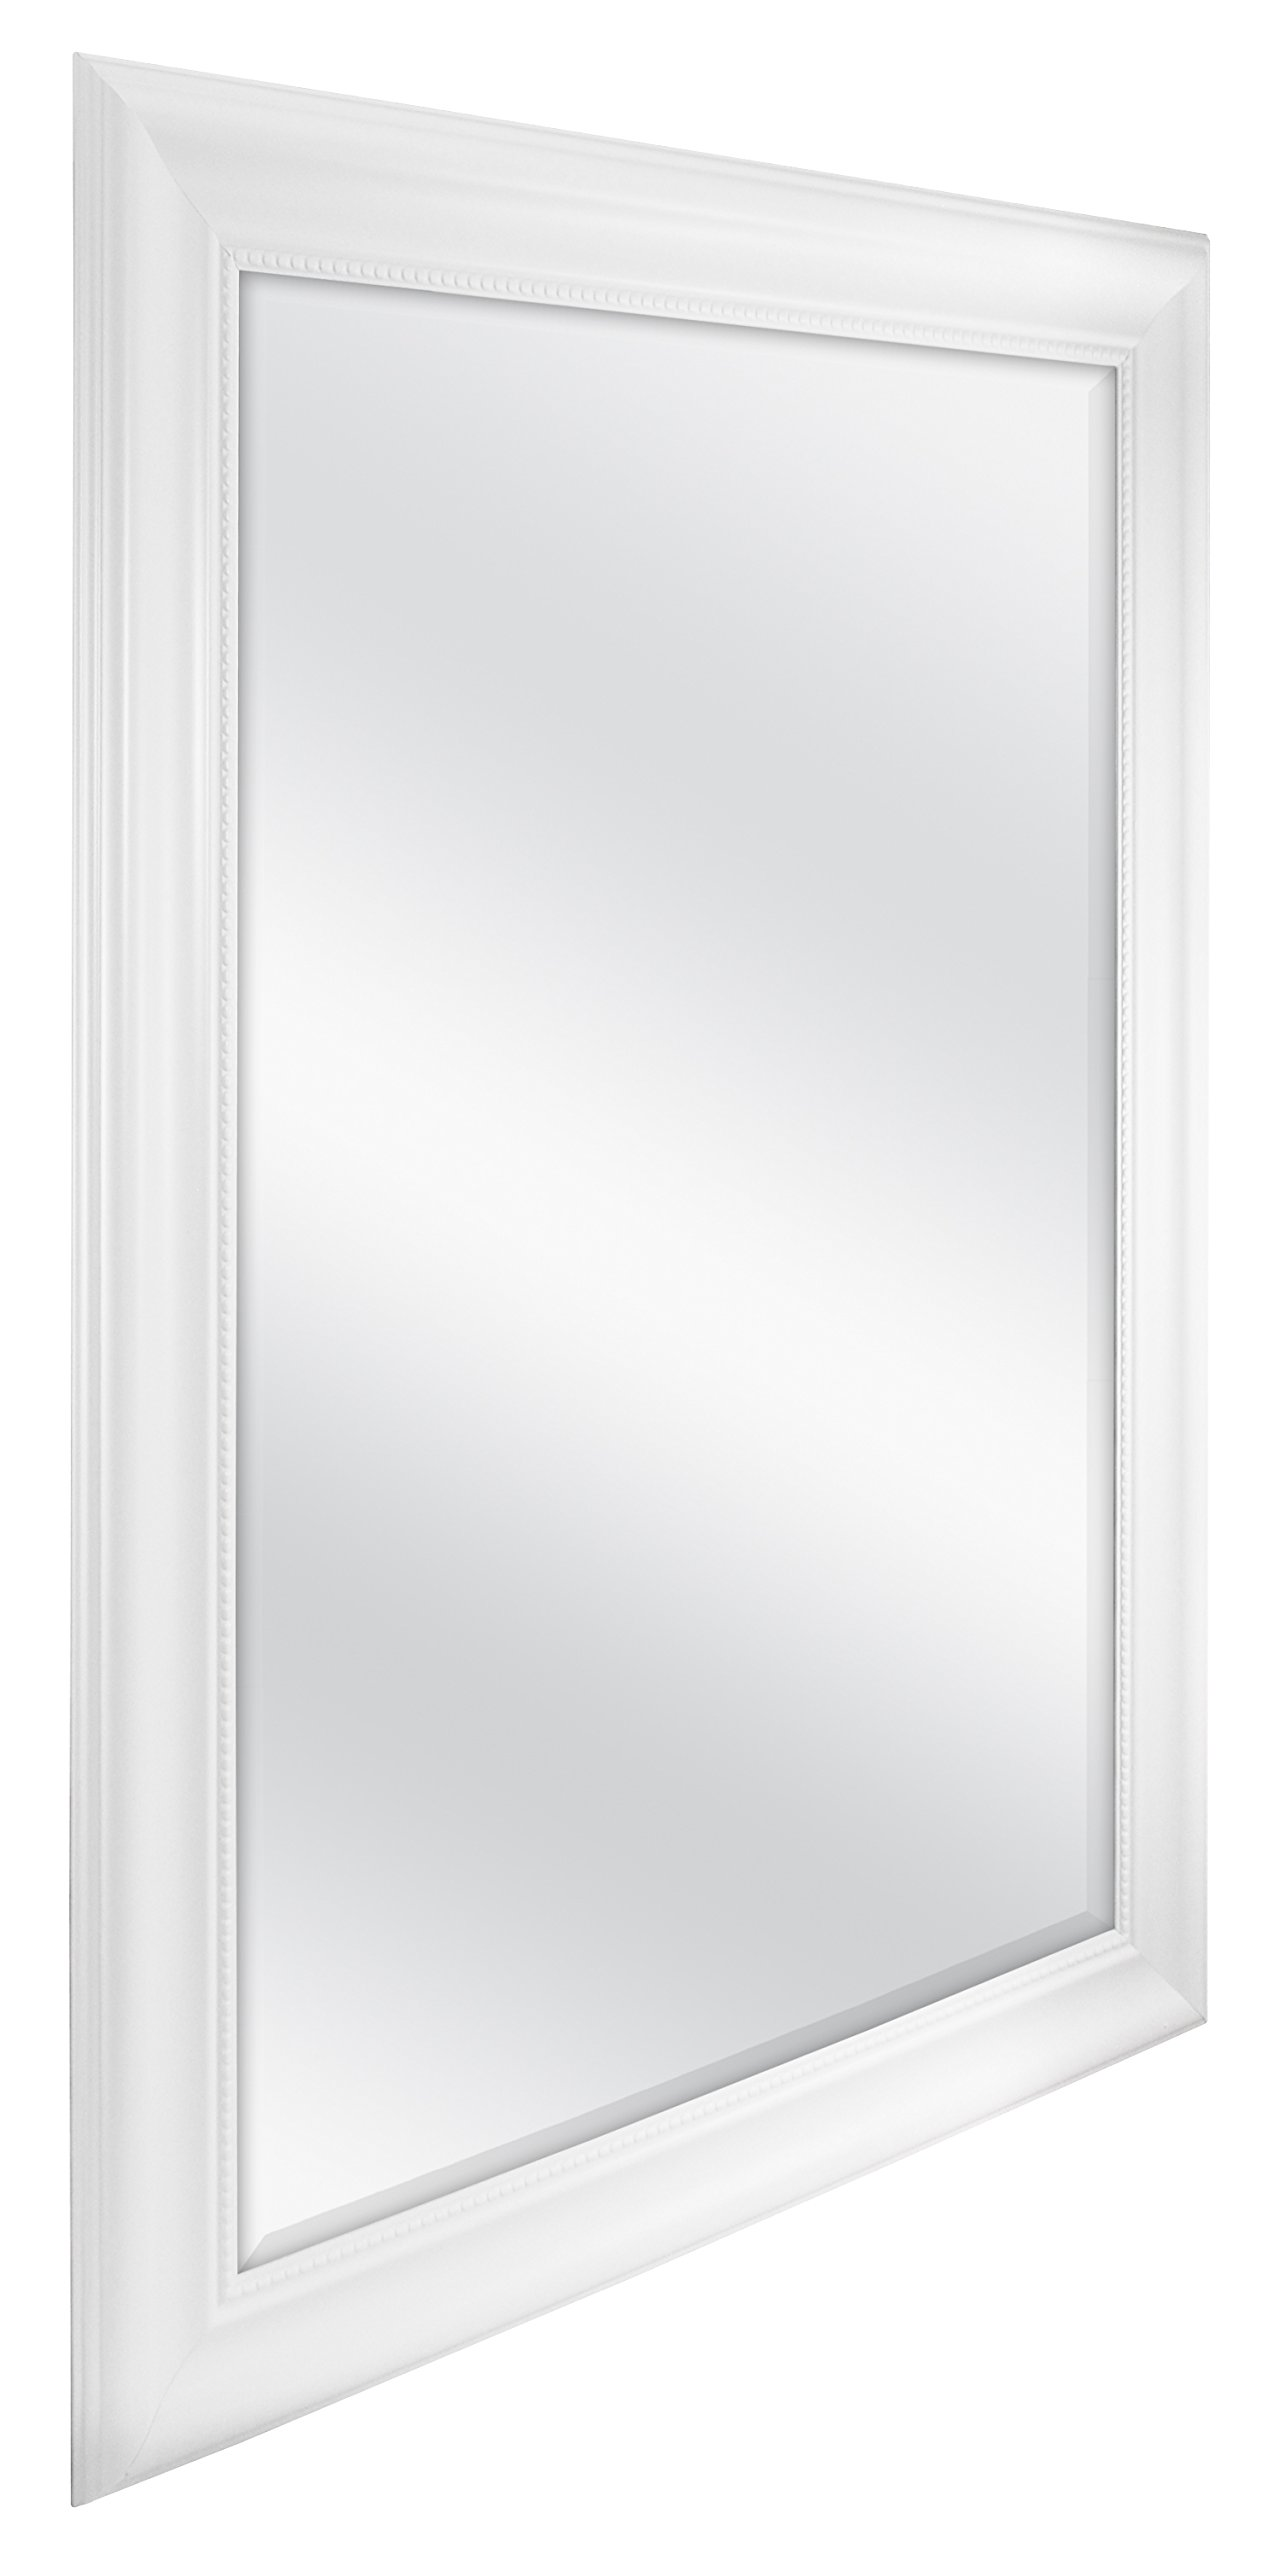 MCS White Beaded Rectangular Wall Mirror, 30-Inch By 42